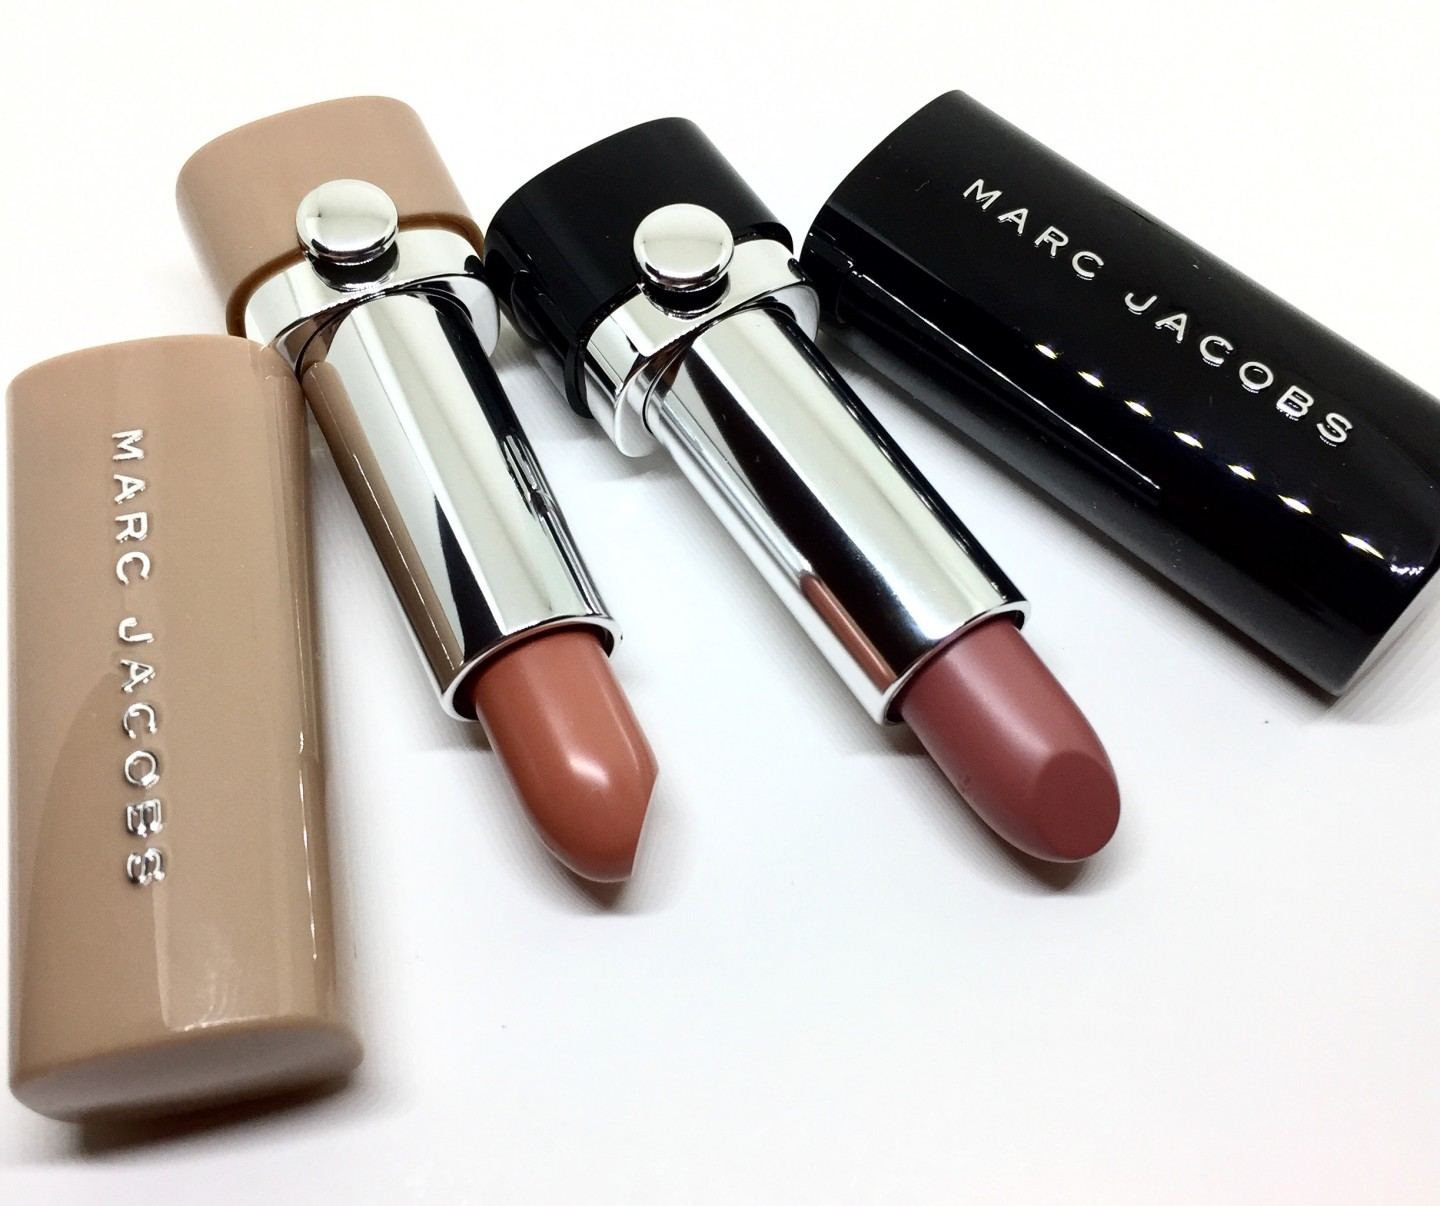 Marc Jacobs Le Marc Lip Creme & New Nudes Sheer Gel Lipstick